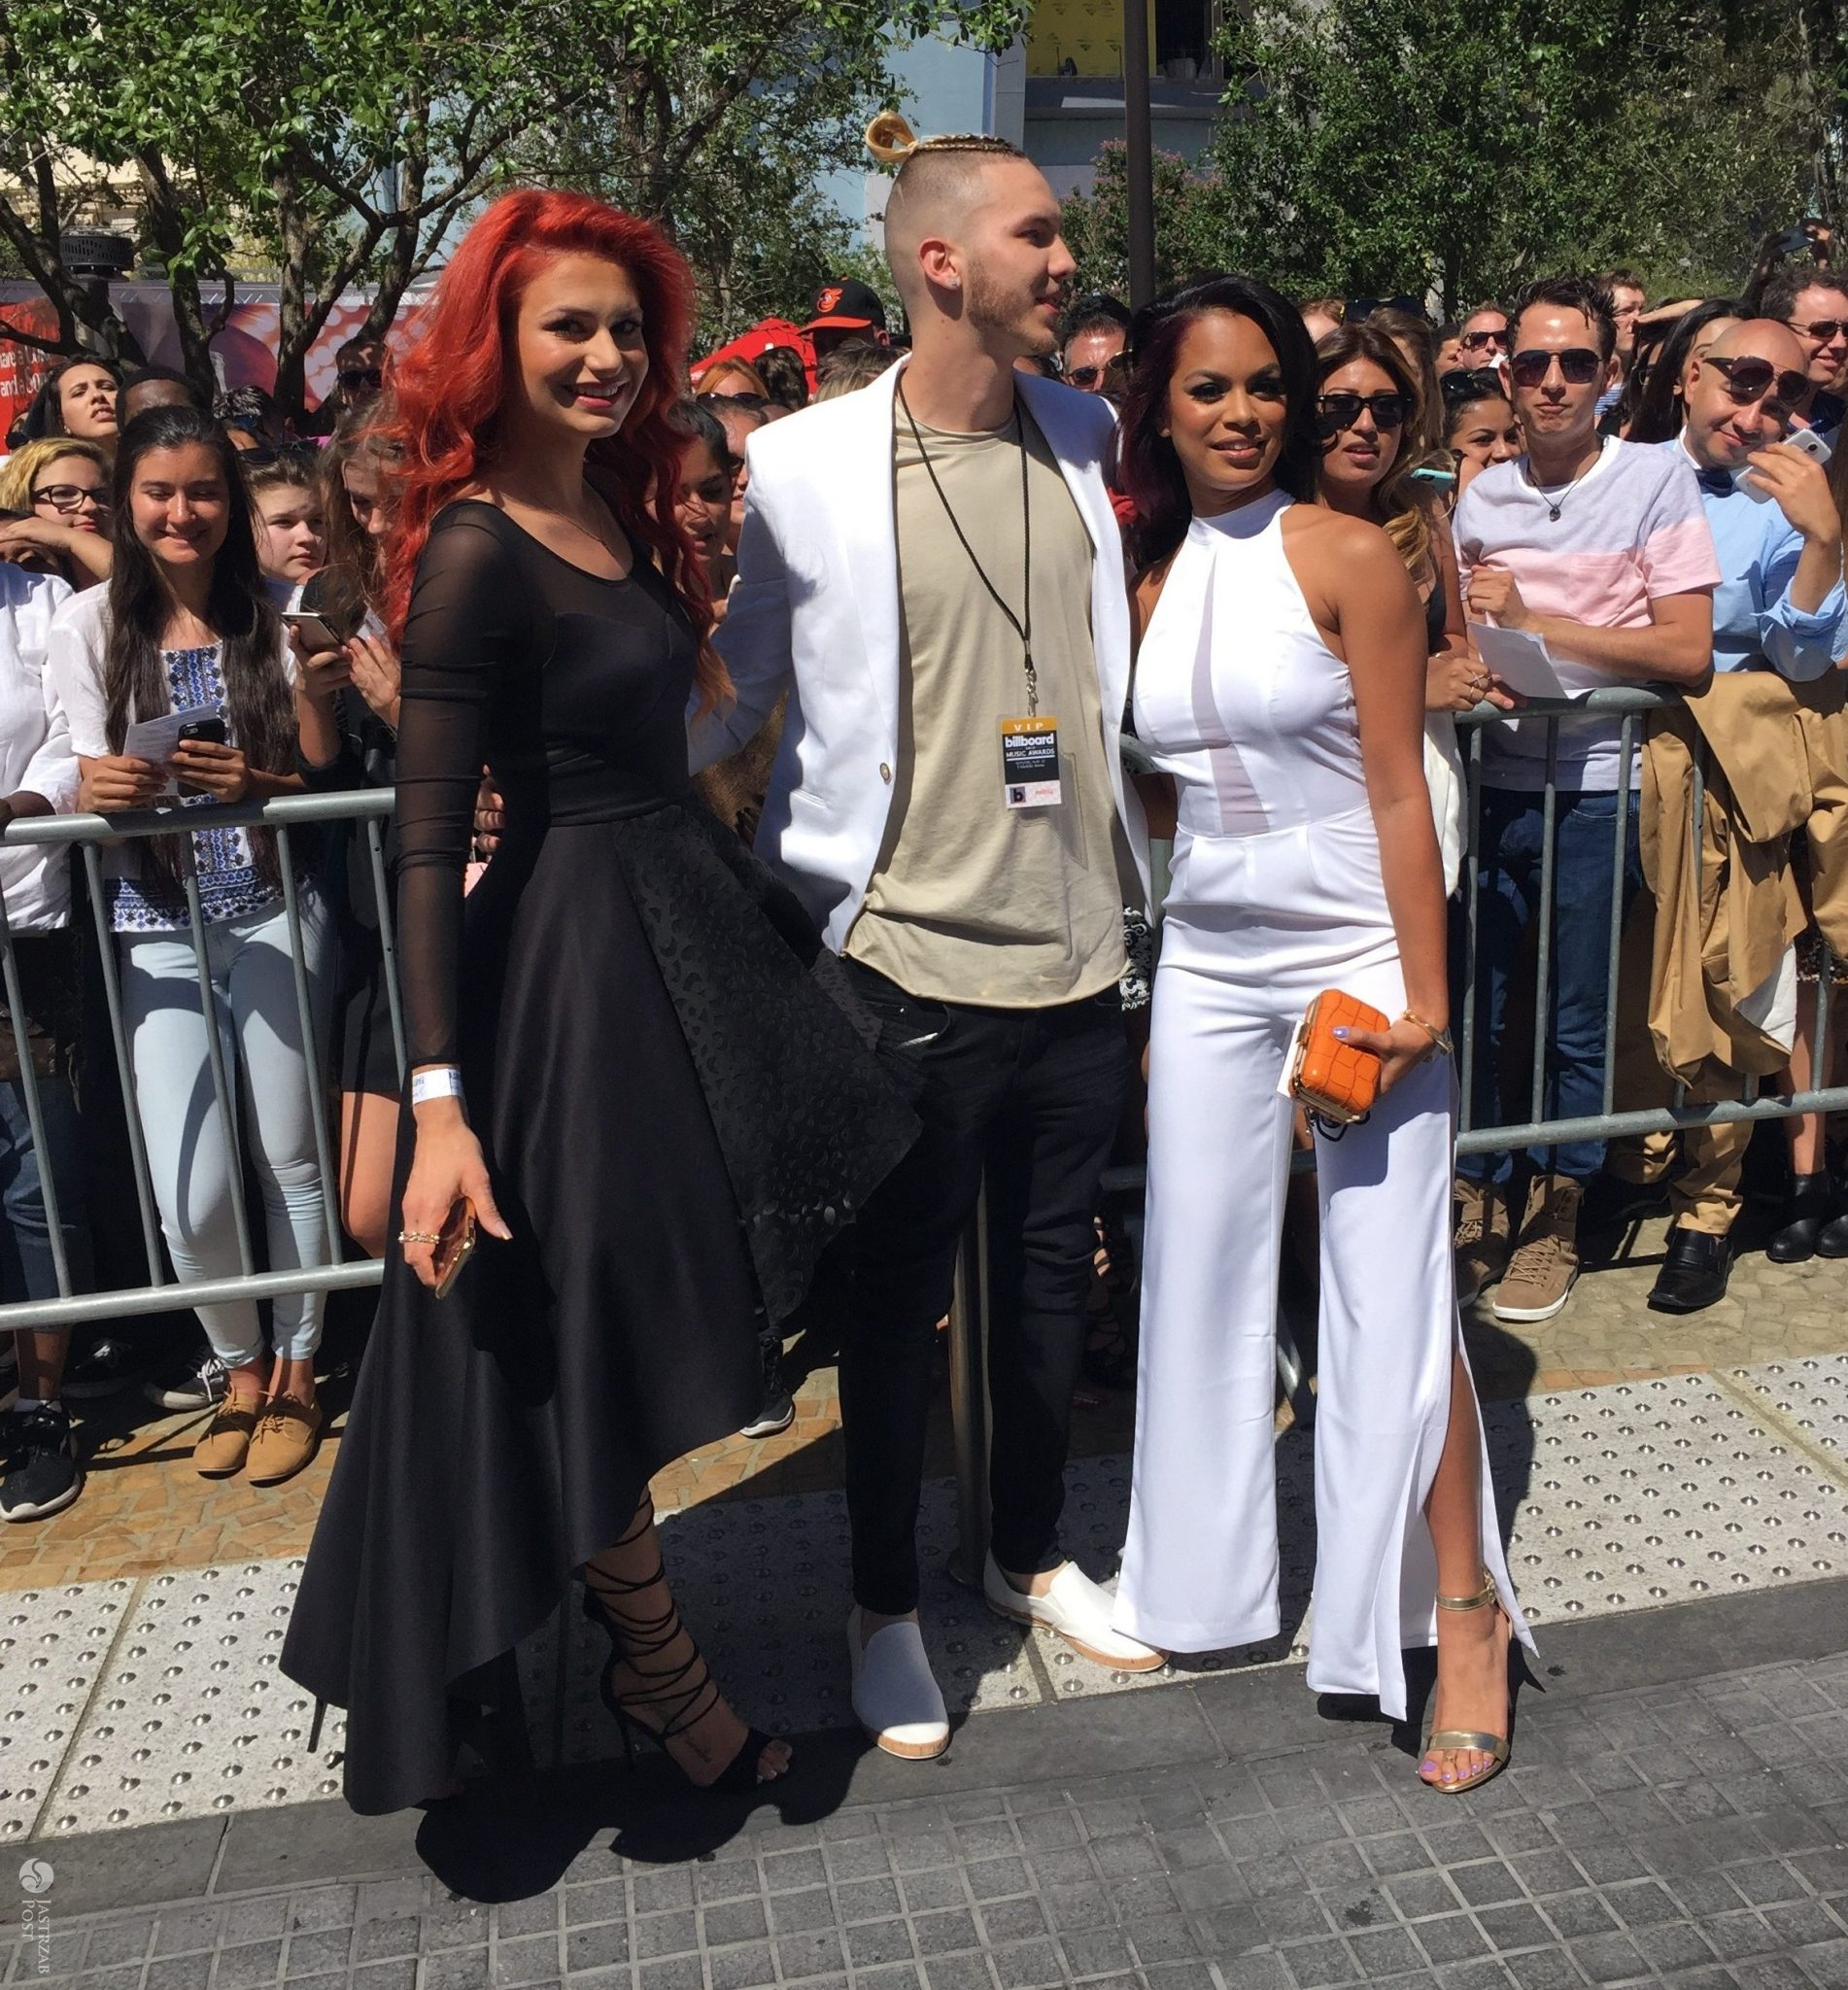 Aleksandra Gintrowska oraz Jordan Morris i Estelle Lavaud, gala Billboard Music Awards 2016 (fot. Jastrząb Post Exclusive)